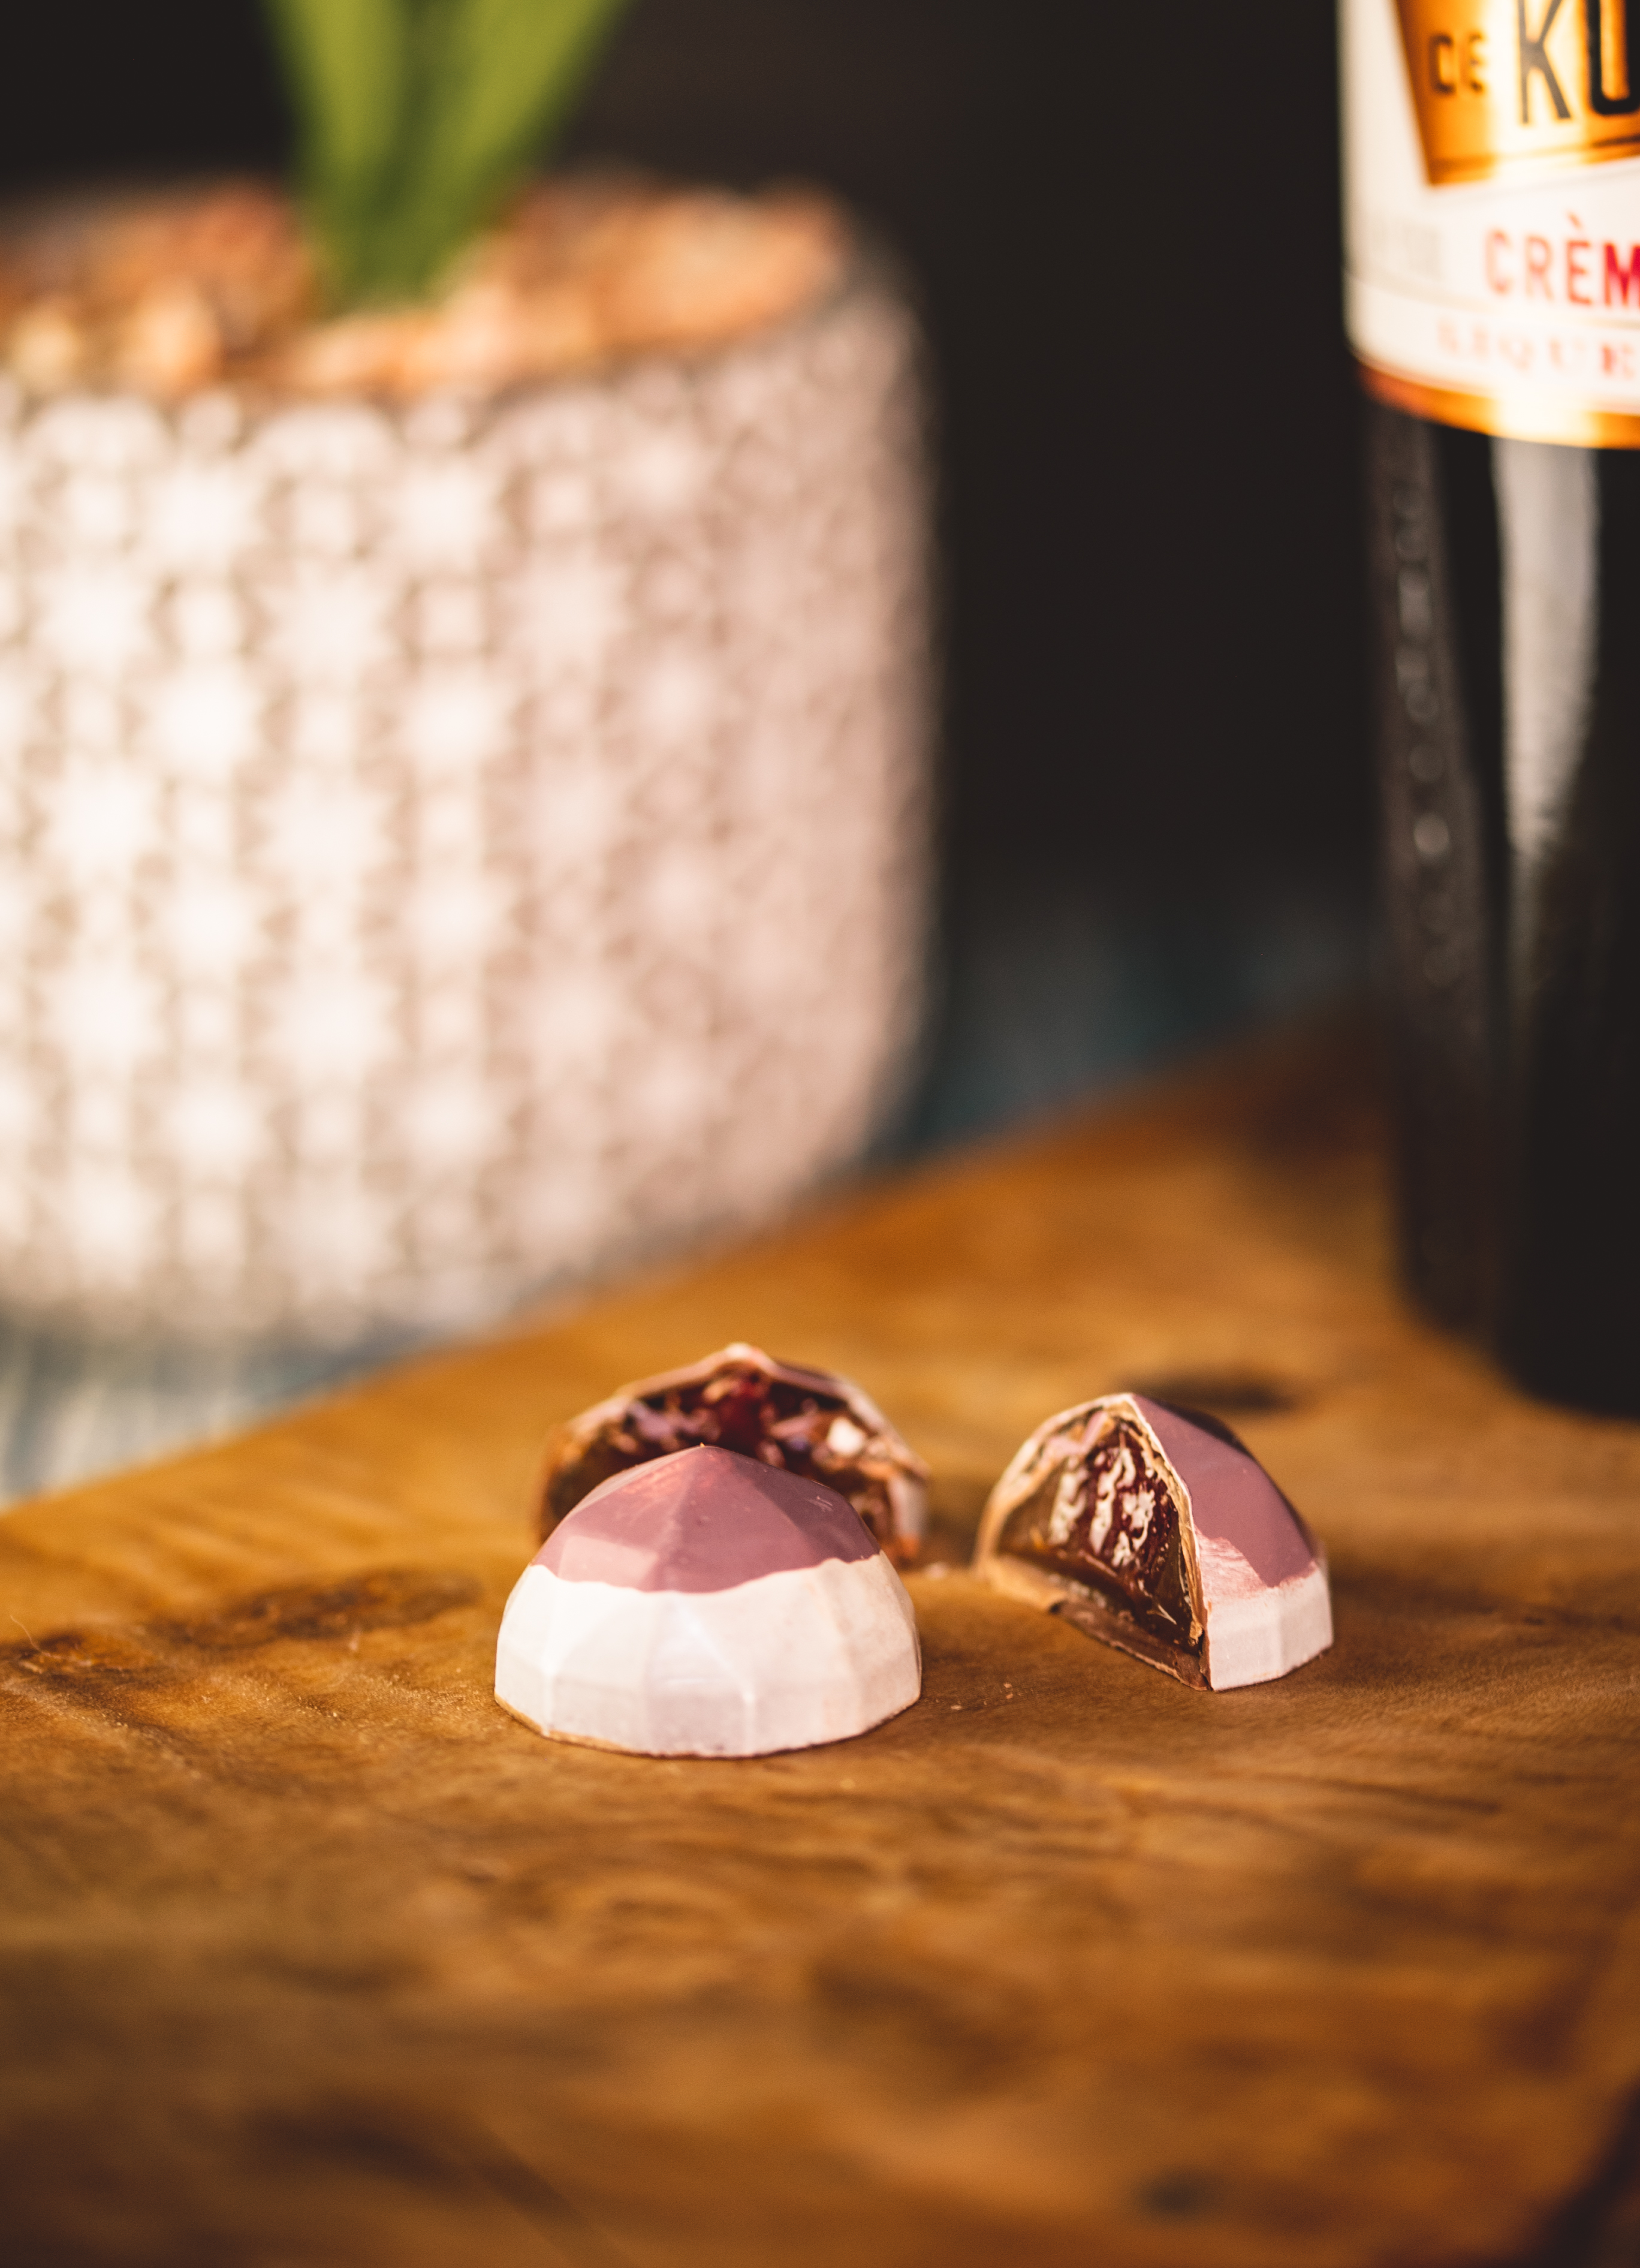 Kir Royale (Contains alcohol) Milk Chocolate Marc de Champagne with blackcurrant gel.